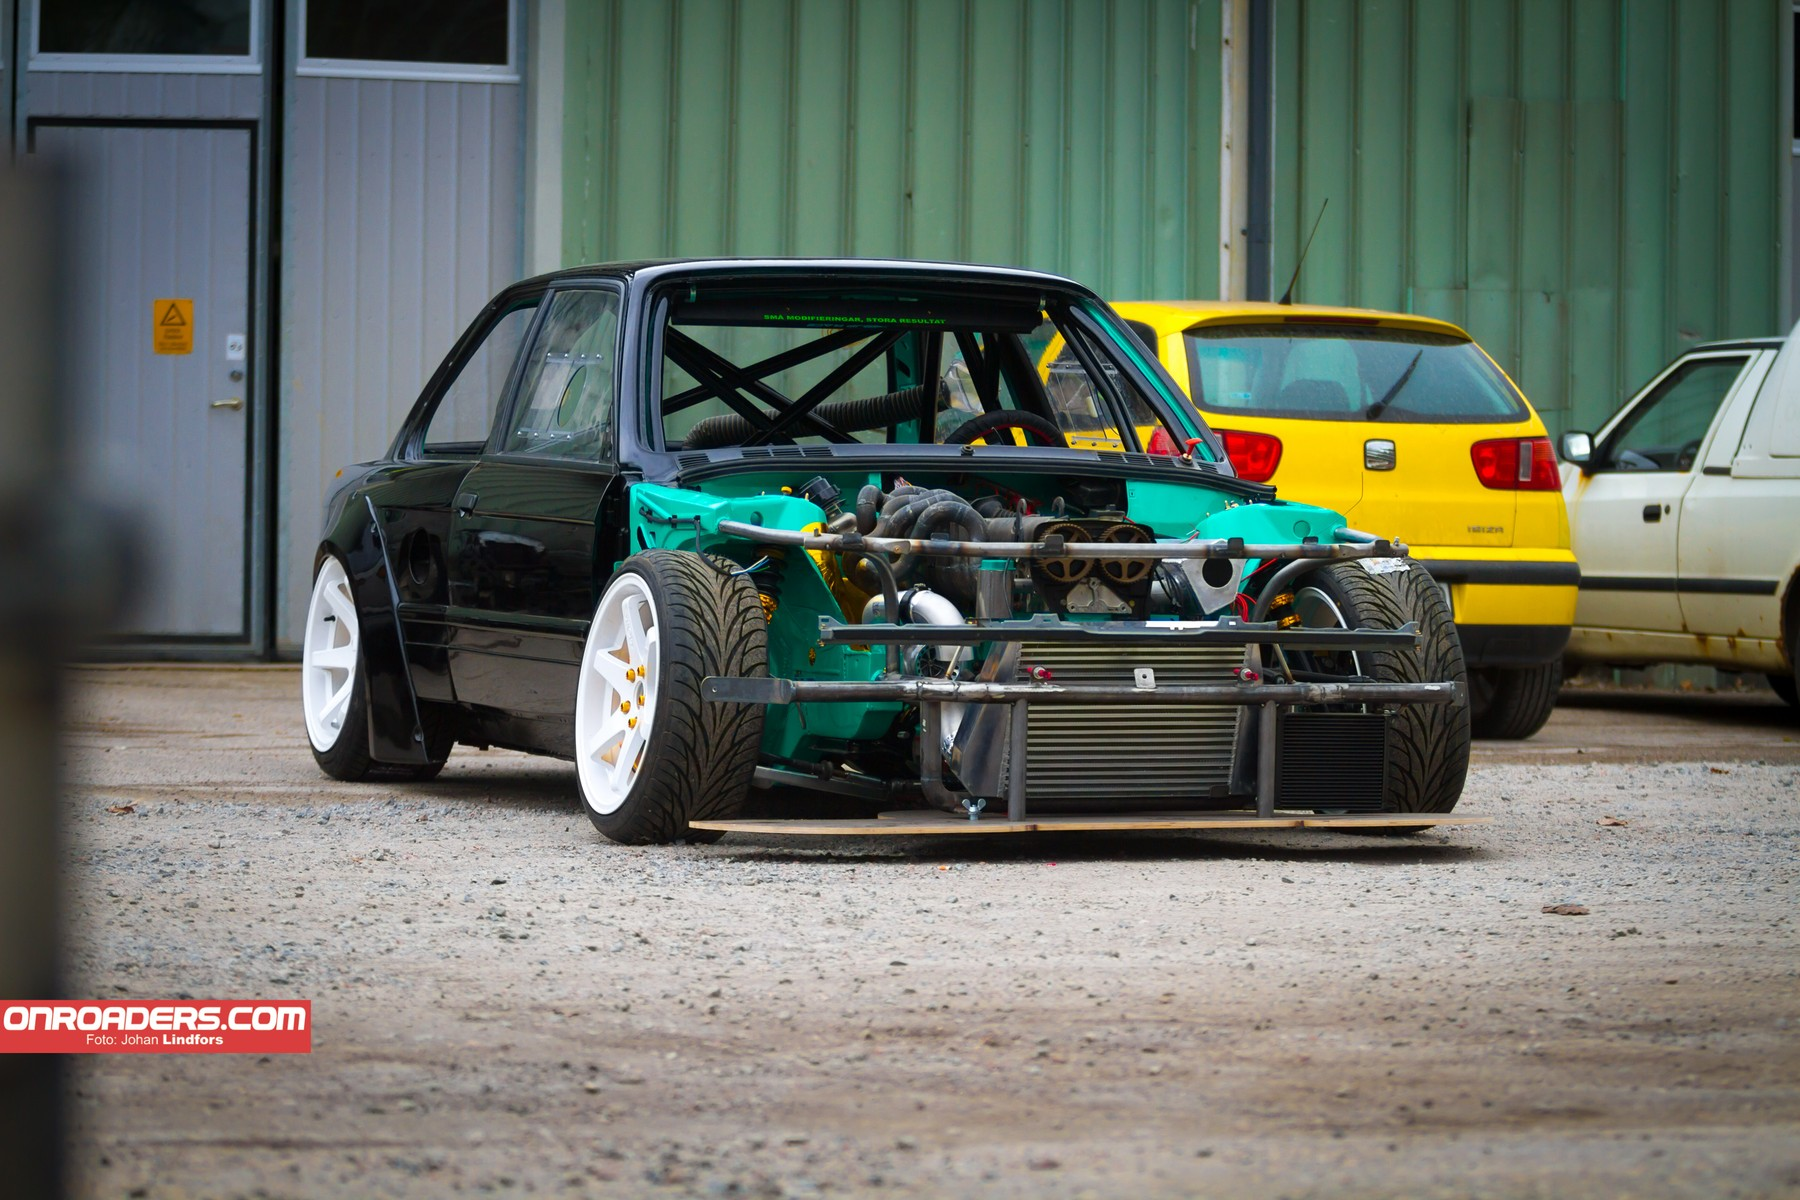 2jz Bmw E30 Stancenation Form Gt Function